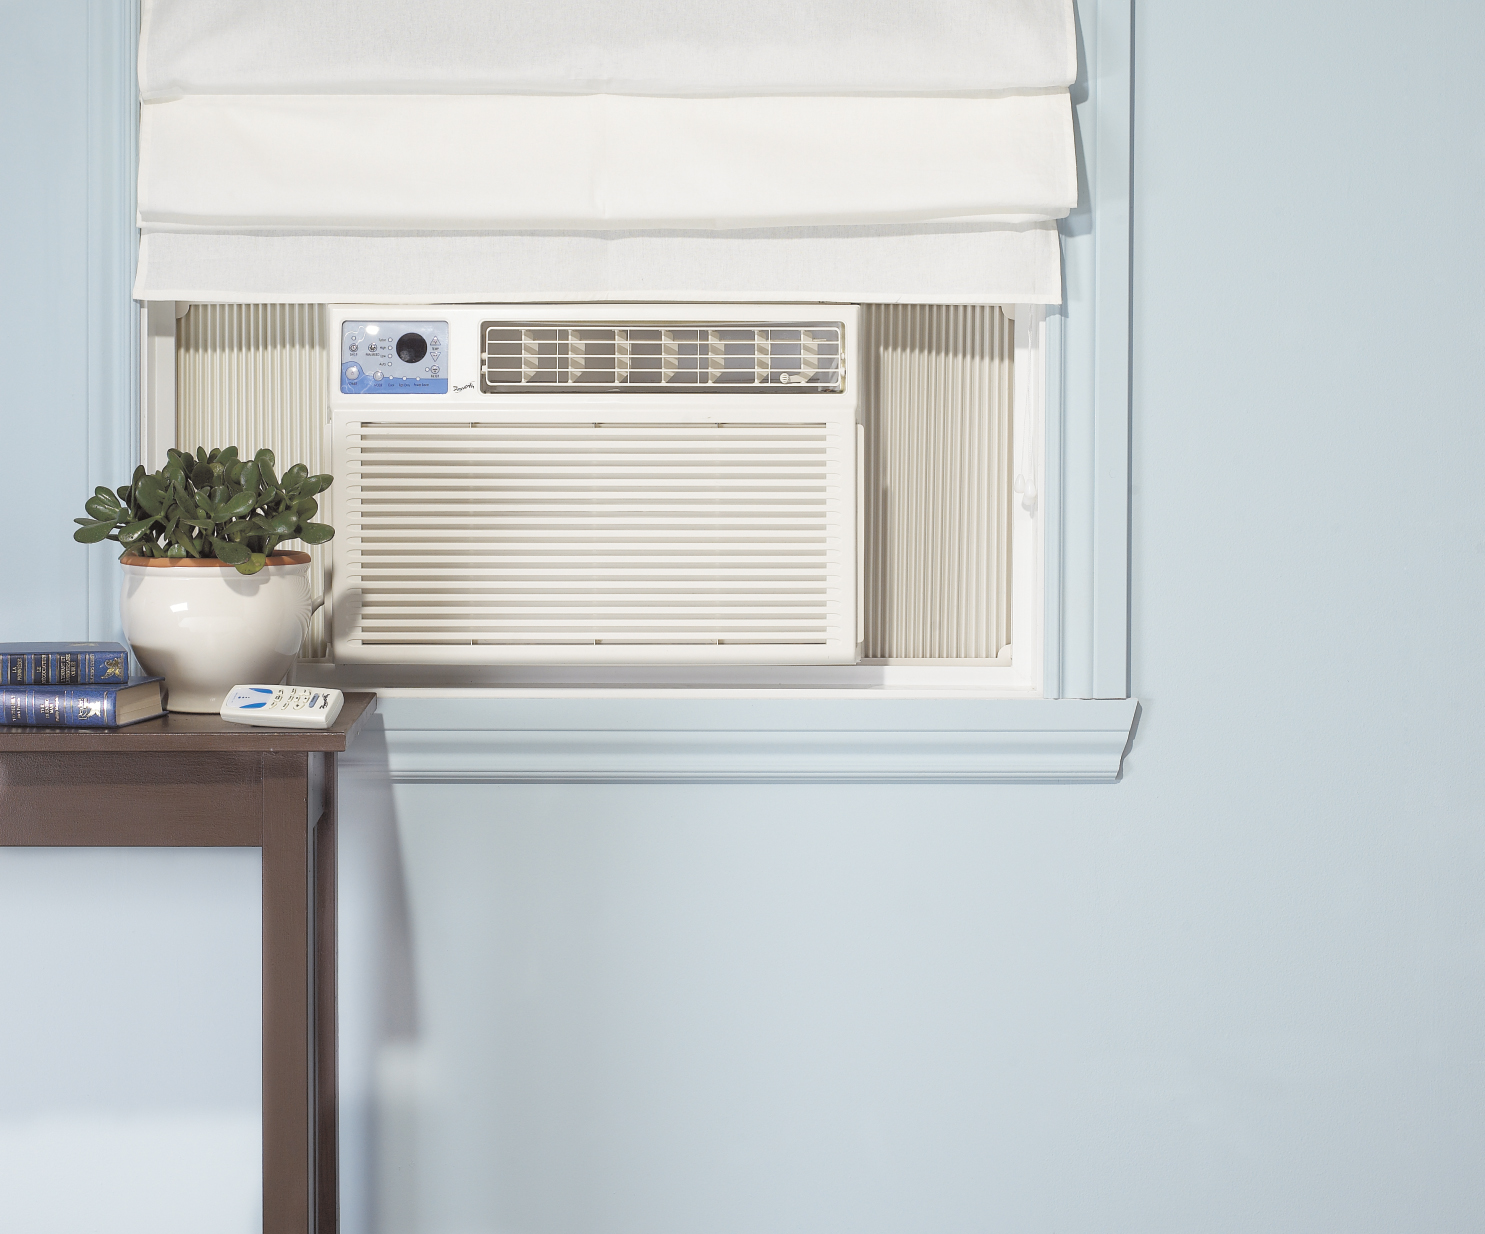 Small Bedroom Air Conditioner Supplemental Air Conditioners Buyers Guides Rona Rona